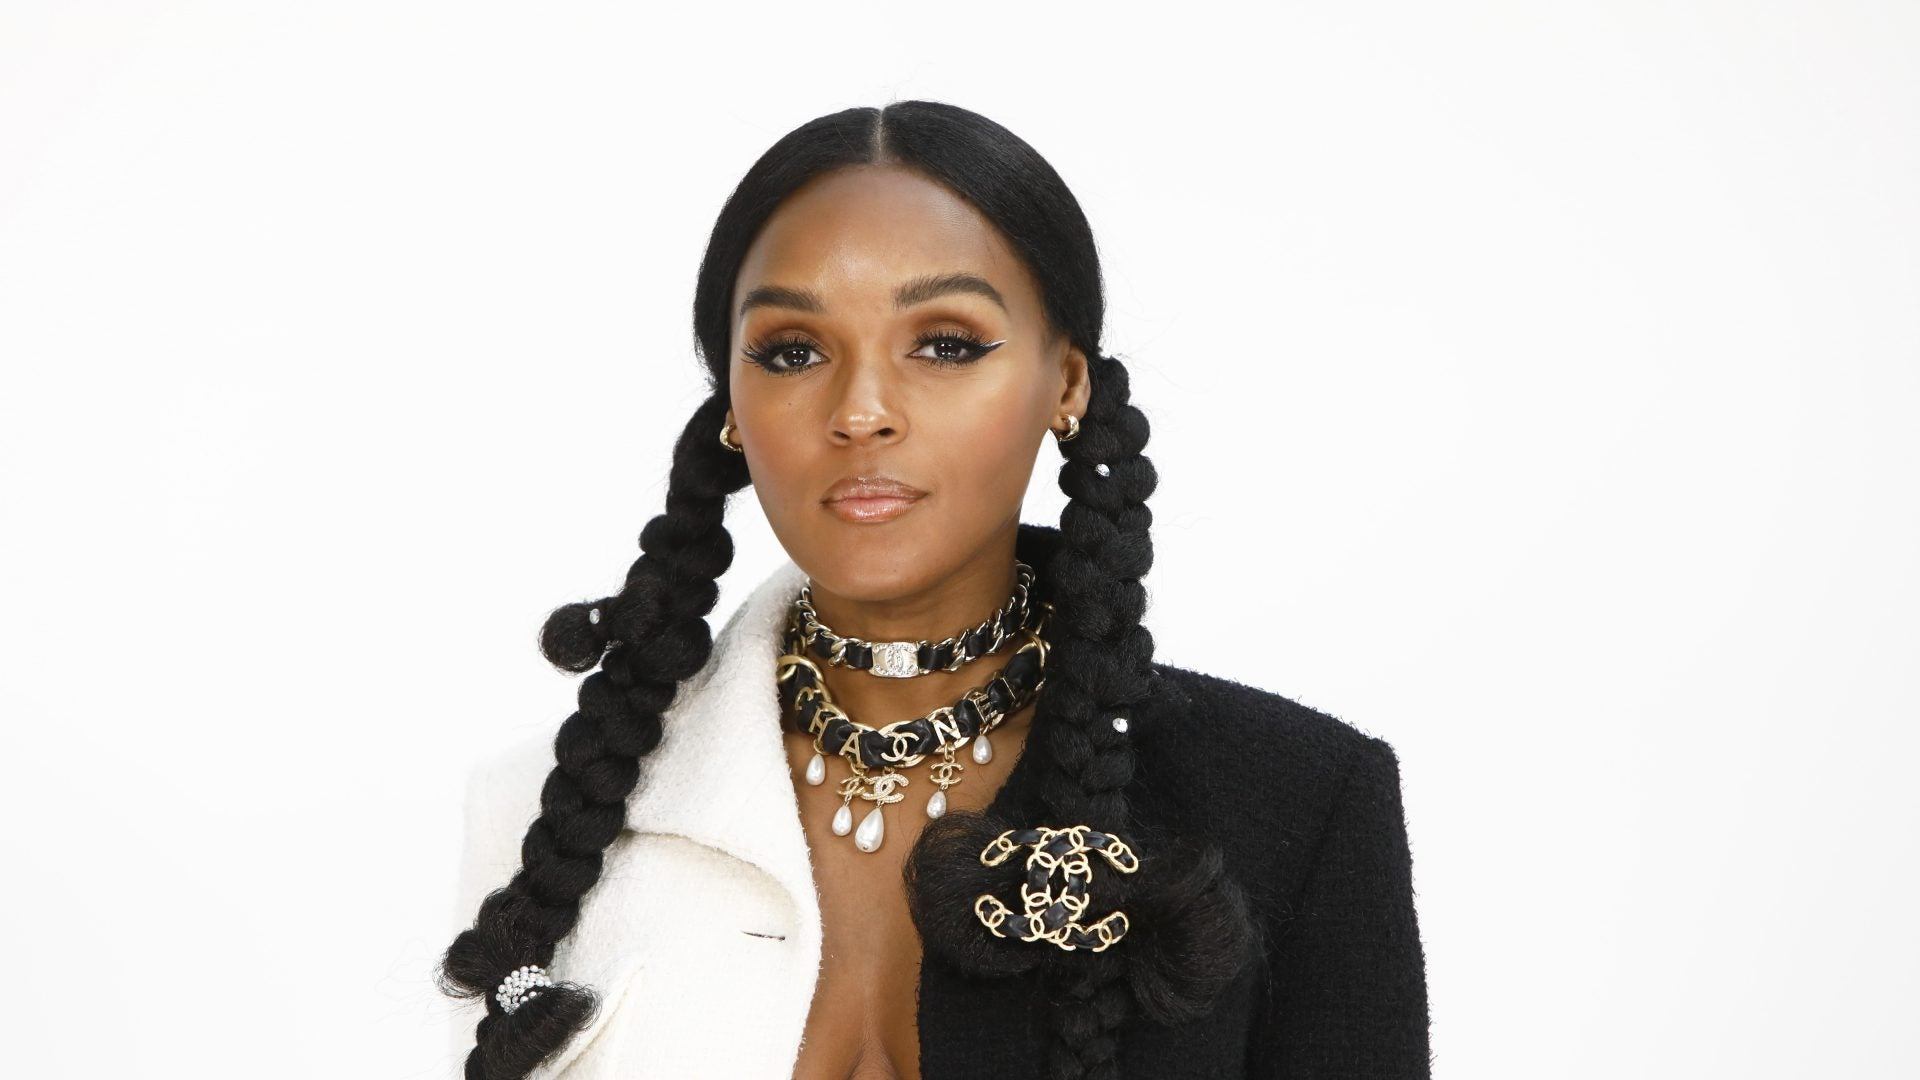 Janelle Monaé Provides Strong Case For Taking Census: $650B Is At Stake